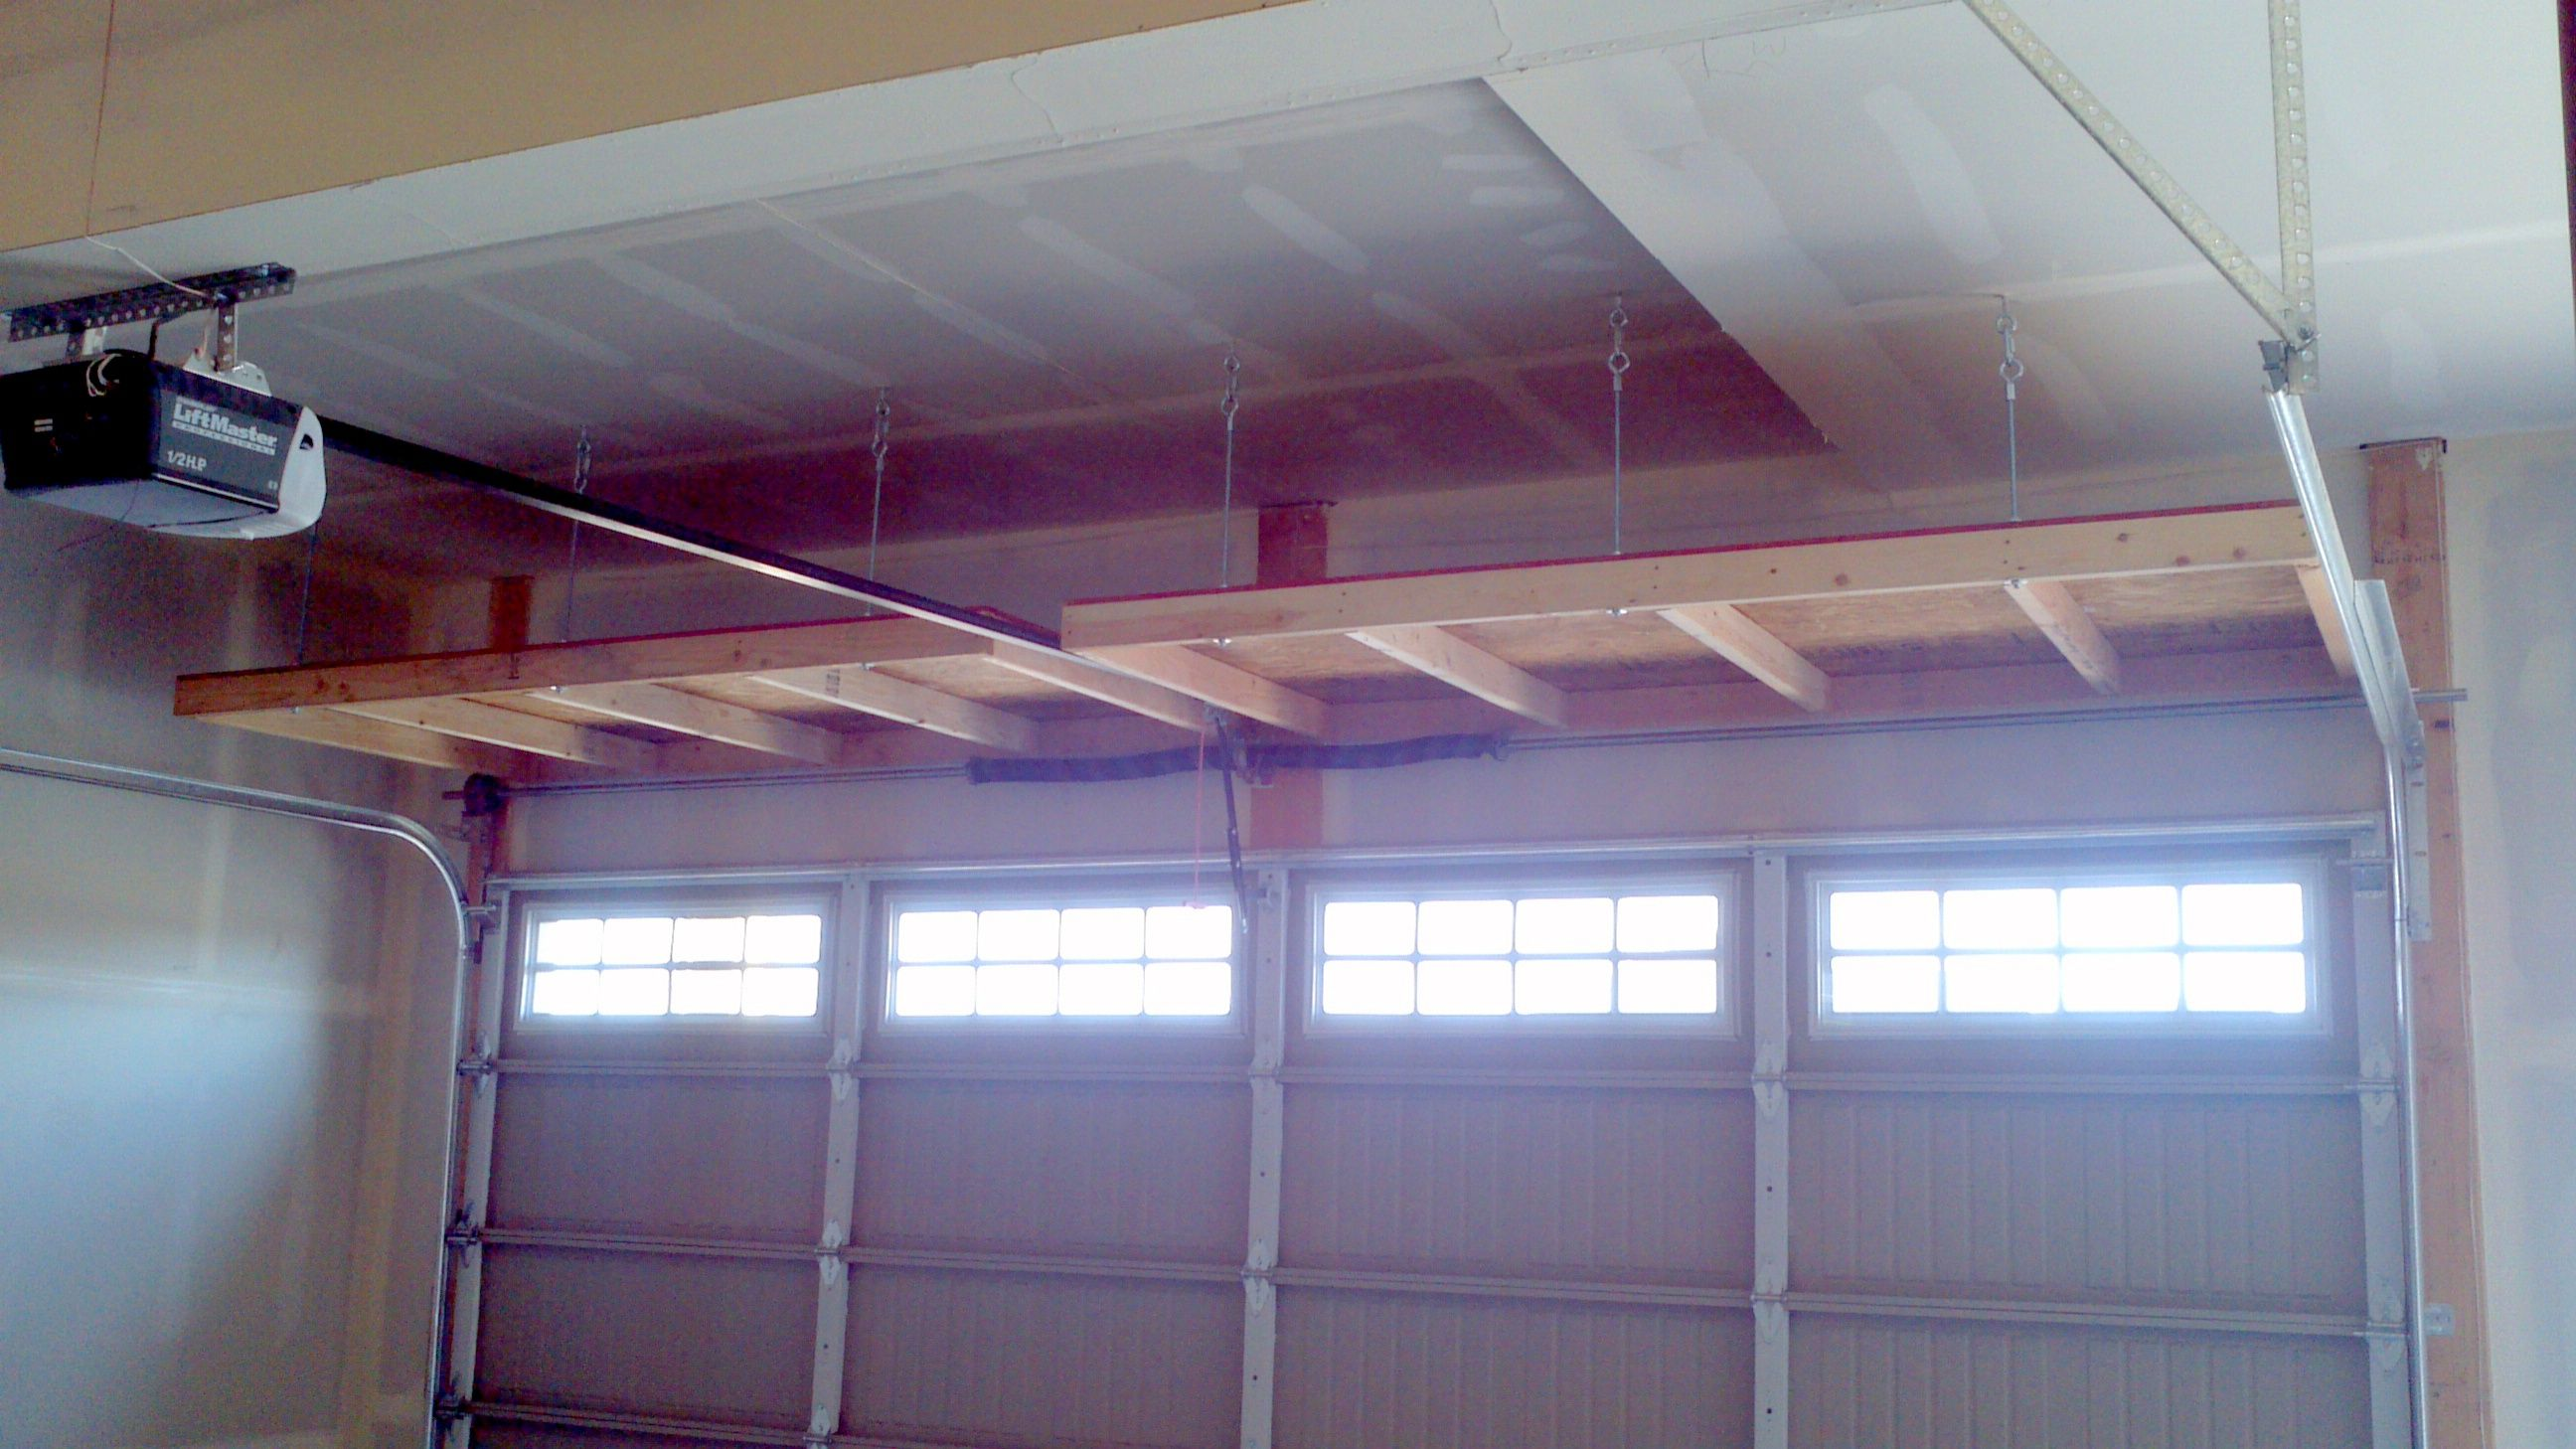 Awesome Check Out Impressive Exceptional Garage Overhead Storage Diy Diy Overhead  Garage Storage Shelves Design Ideas From Marie Cook To Redesign Your Living.